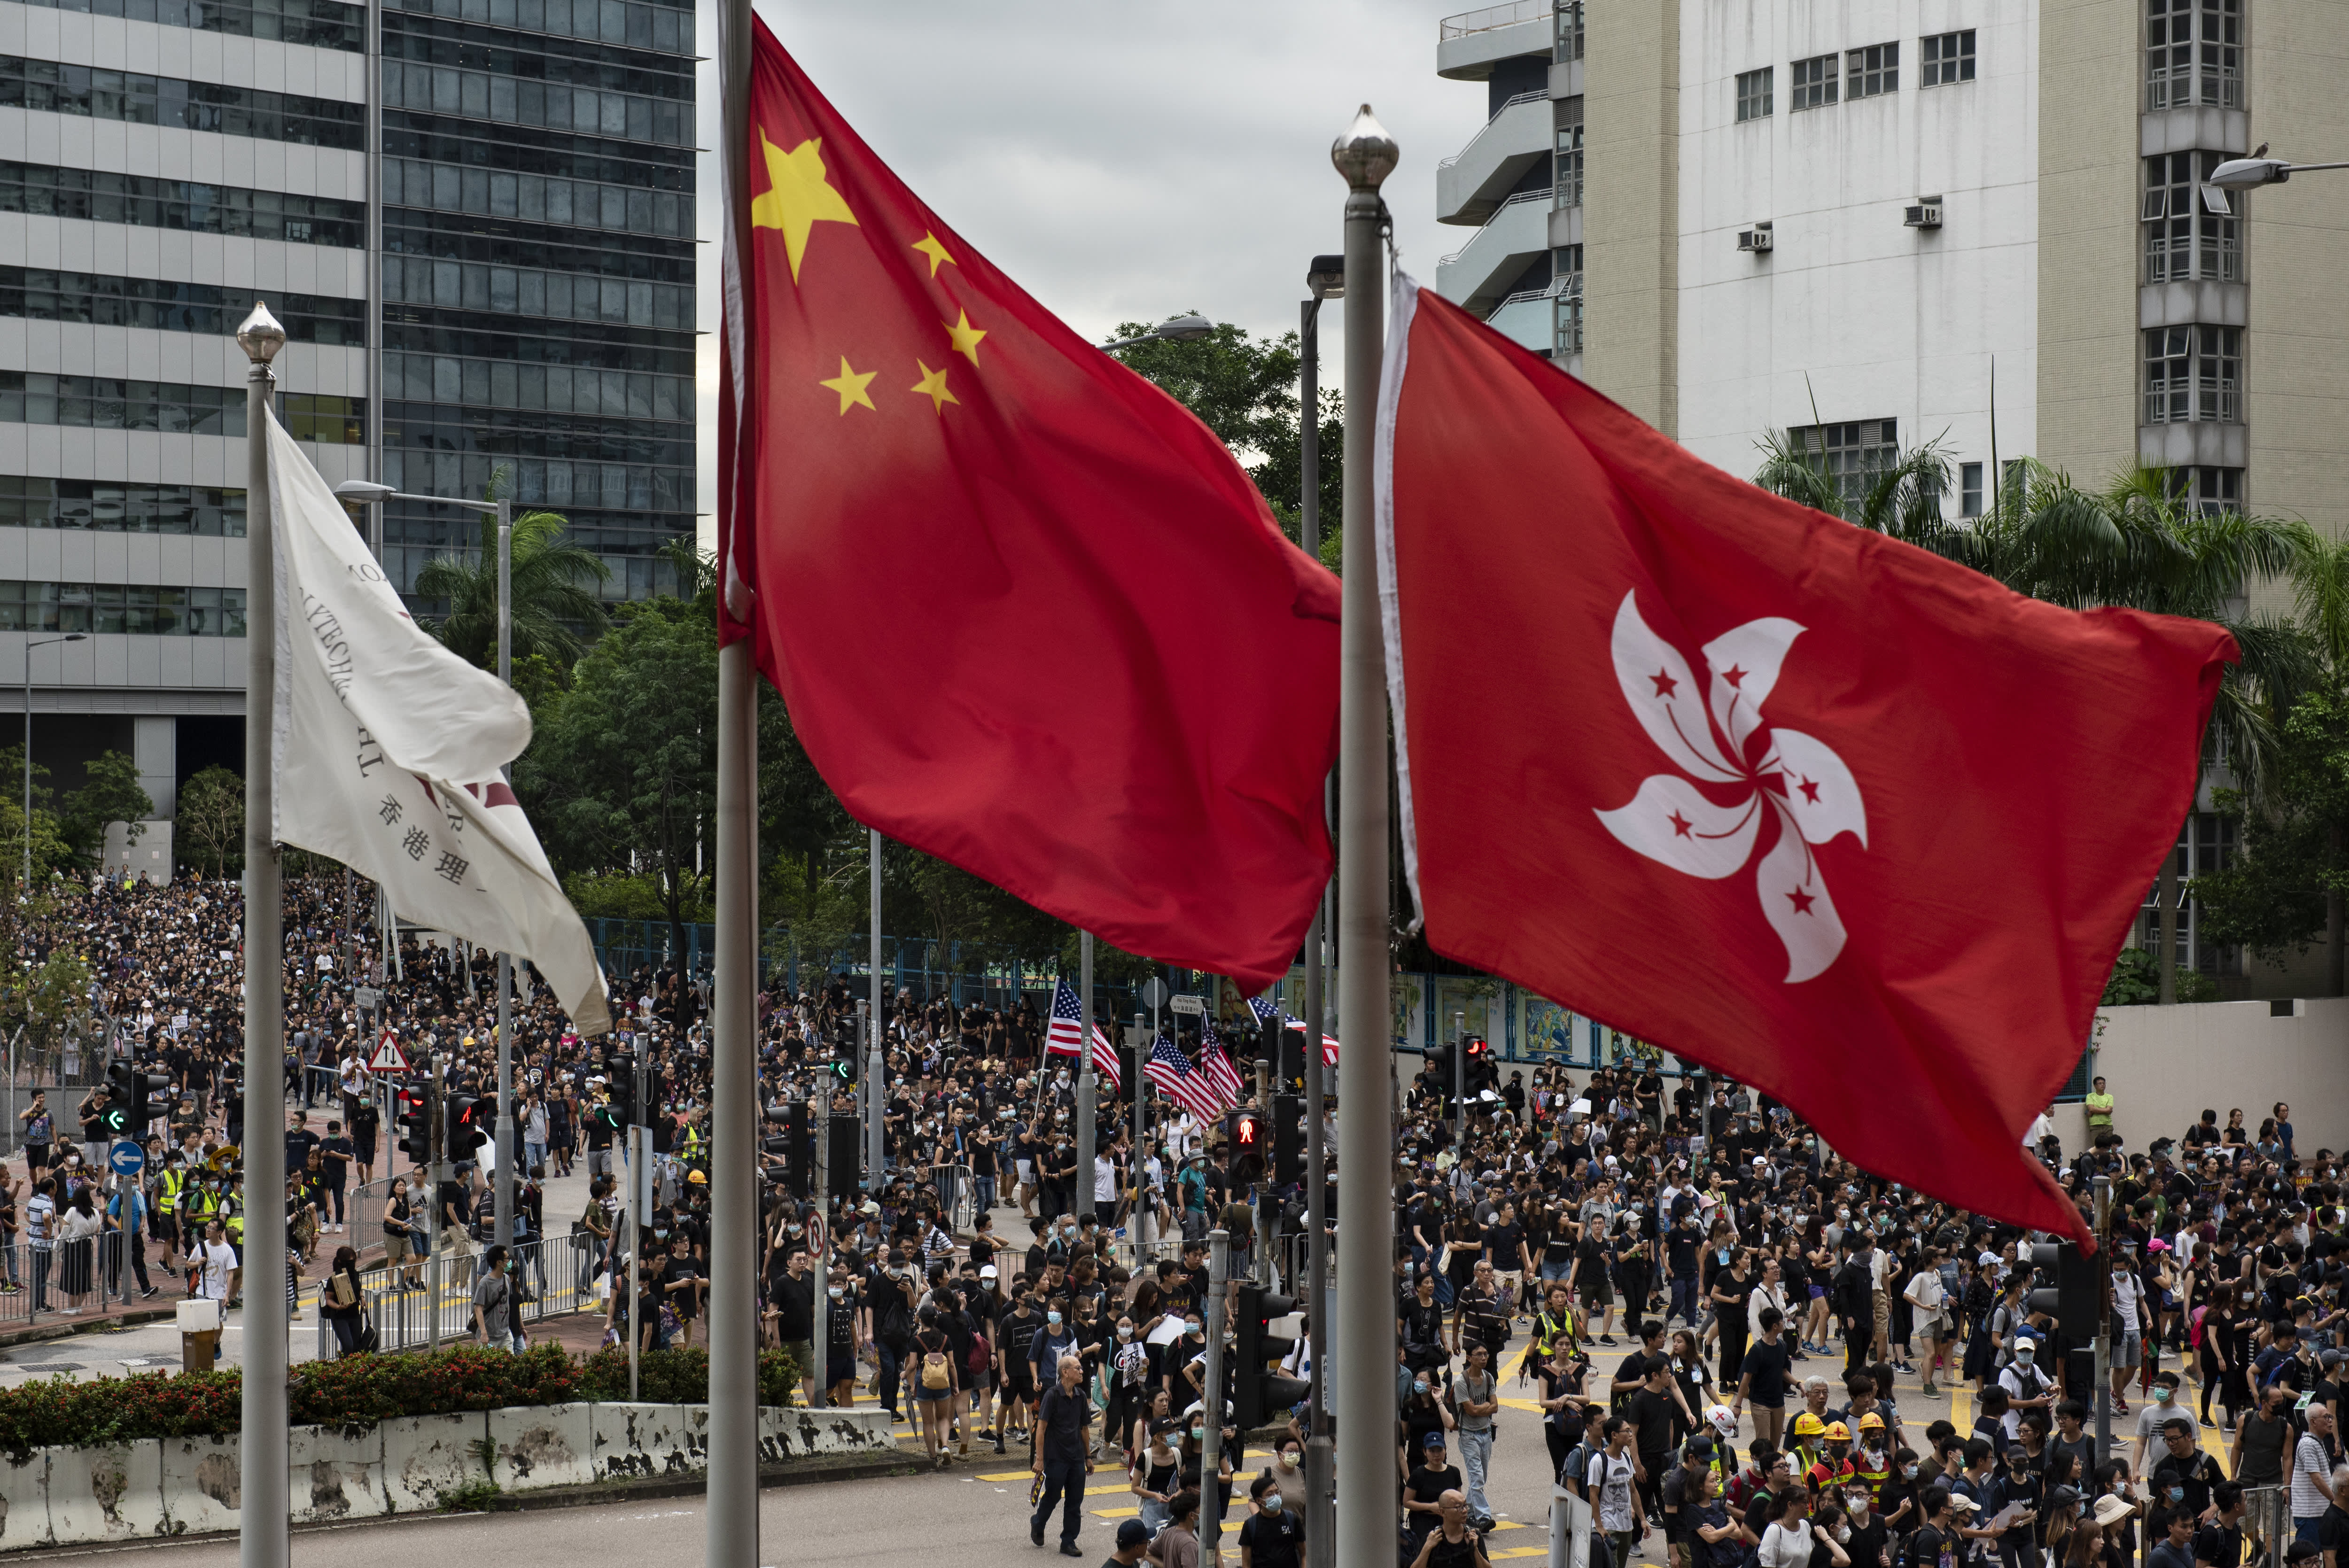 Hong Kong protests will be 'settled or crushed' ahead of China national celebrations, analyst says